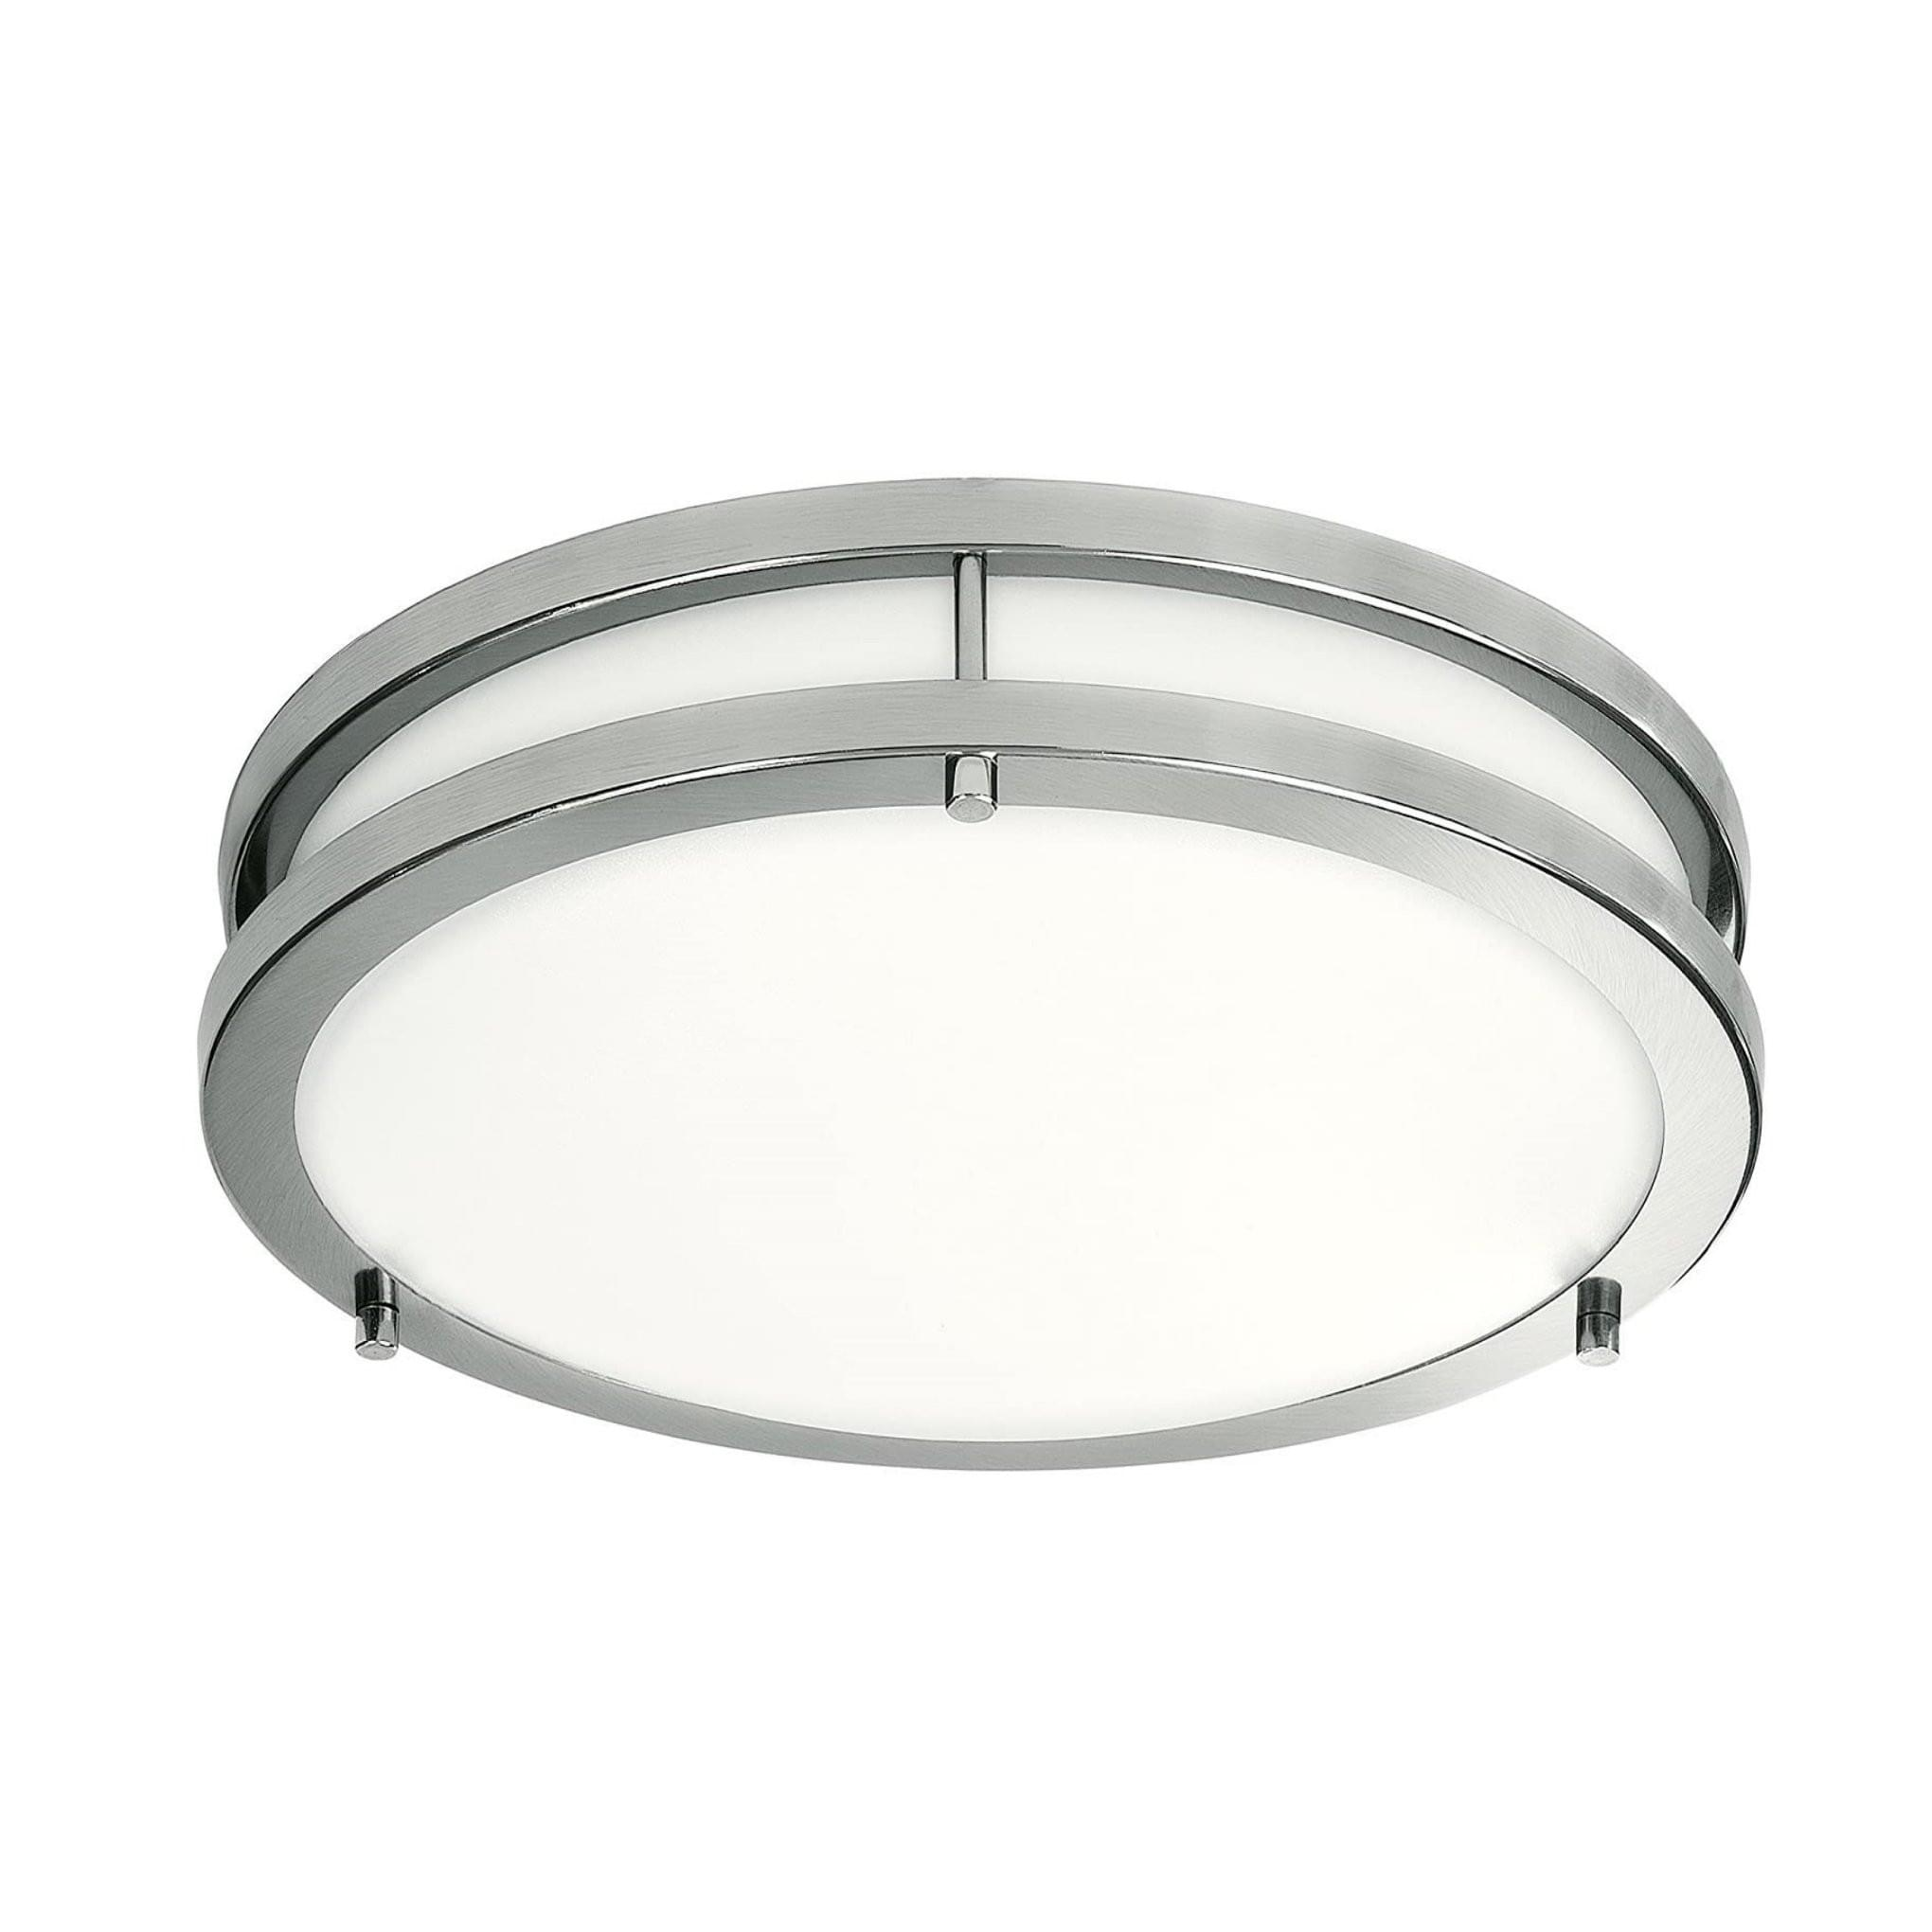 Flush Mount LED Fixture 15Inch 3in ONE LED Ceiling Lights